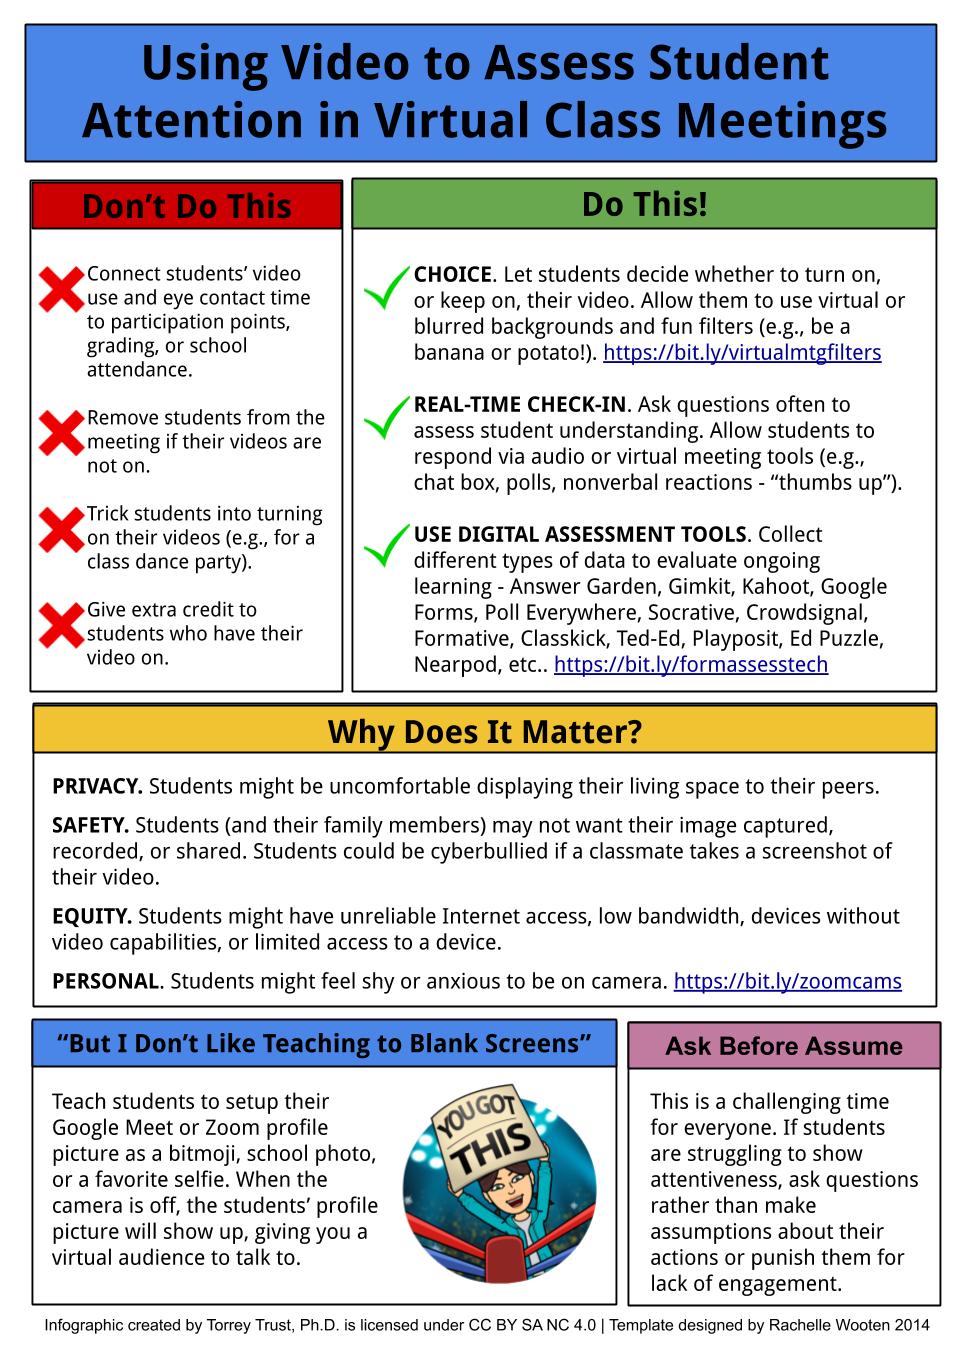 Using Video to Assess Student Attention in Virtual Class Meetings Infographic